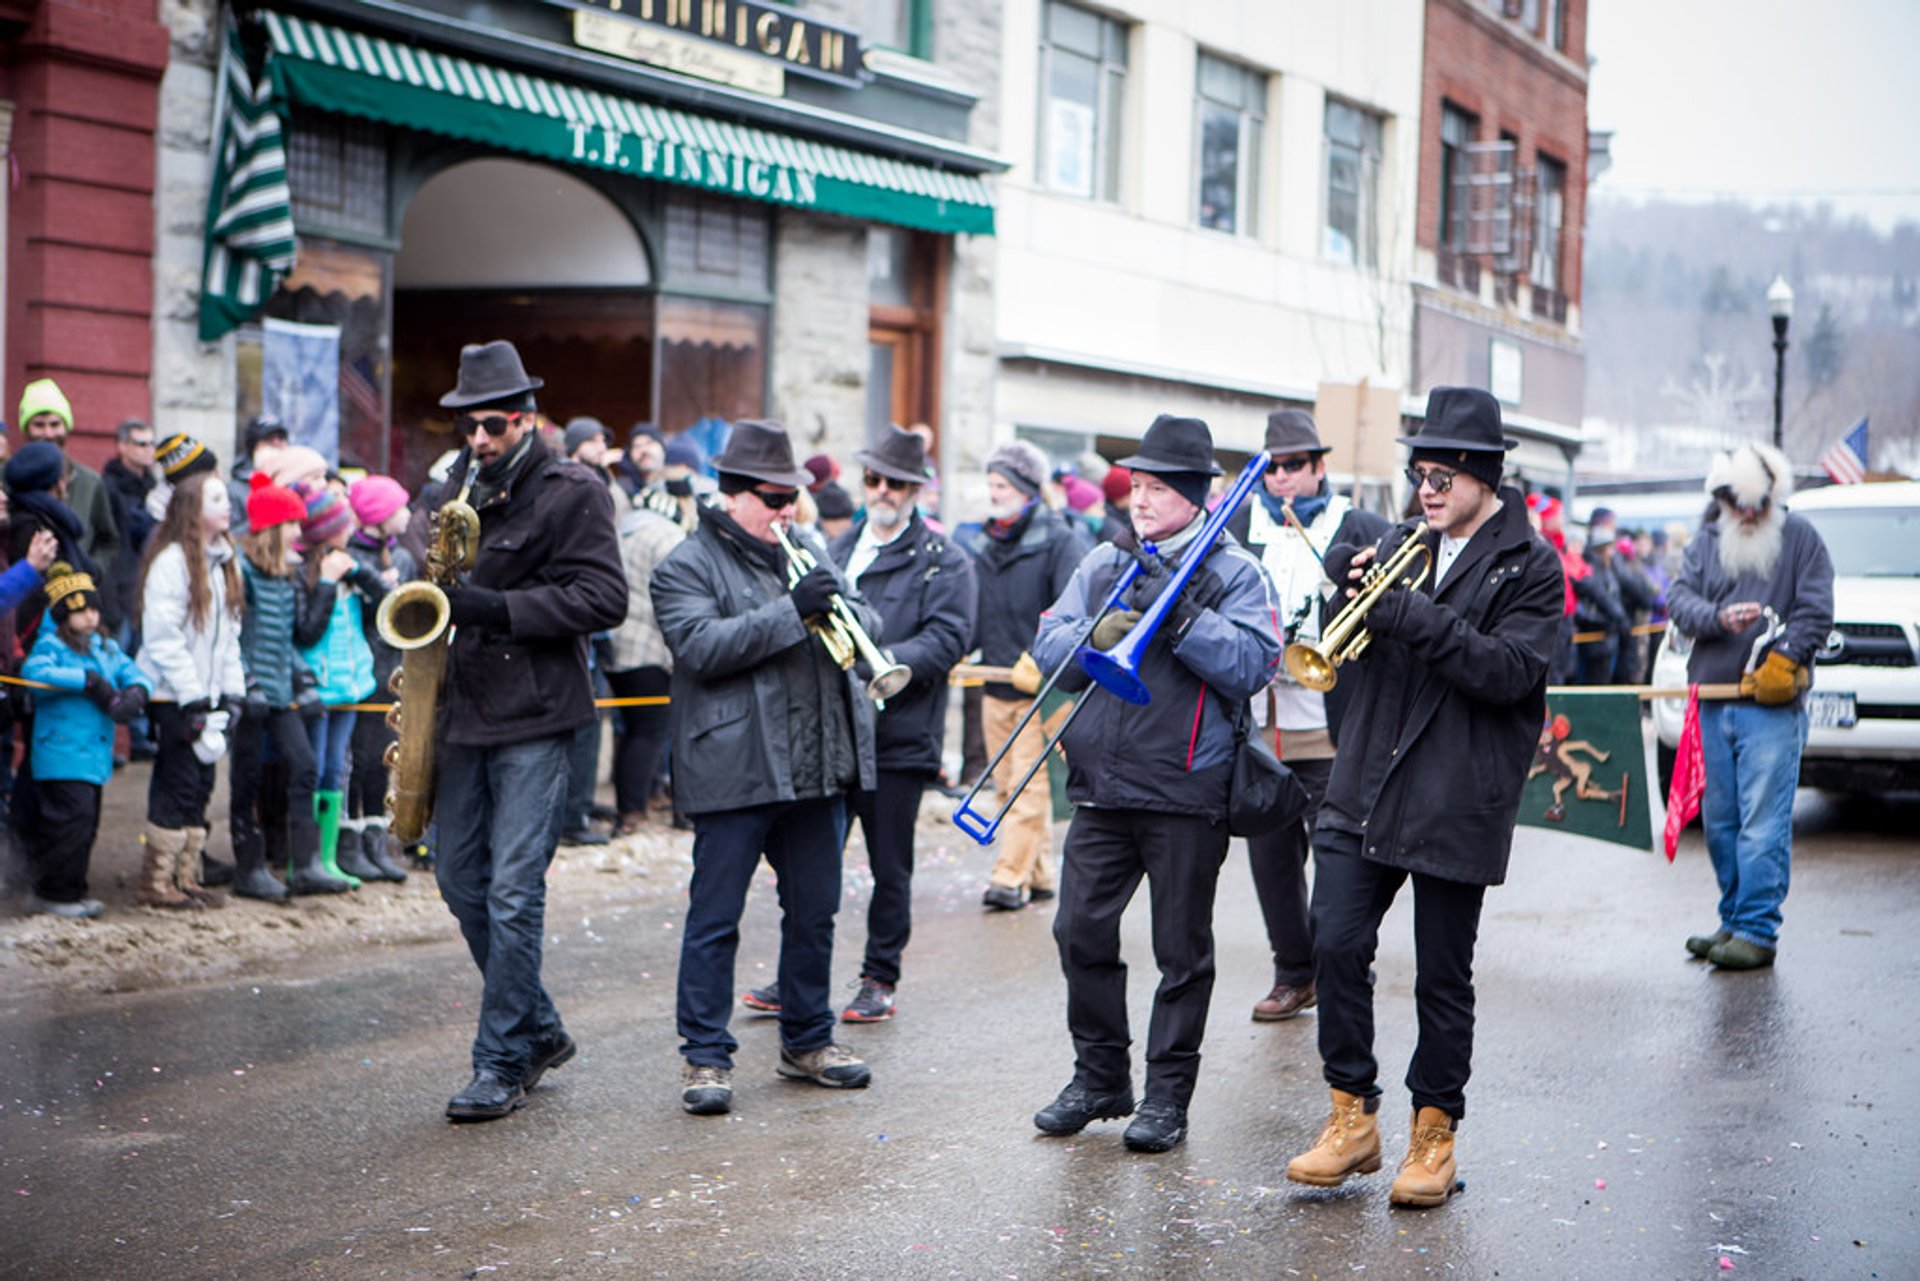 Best time for Saranac Lake Winter Carnival 2020